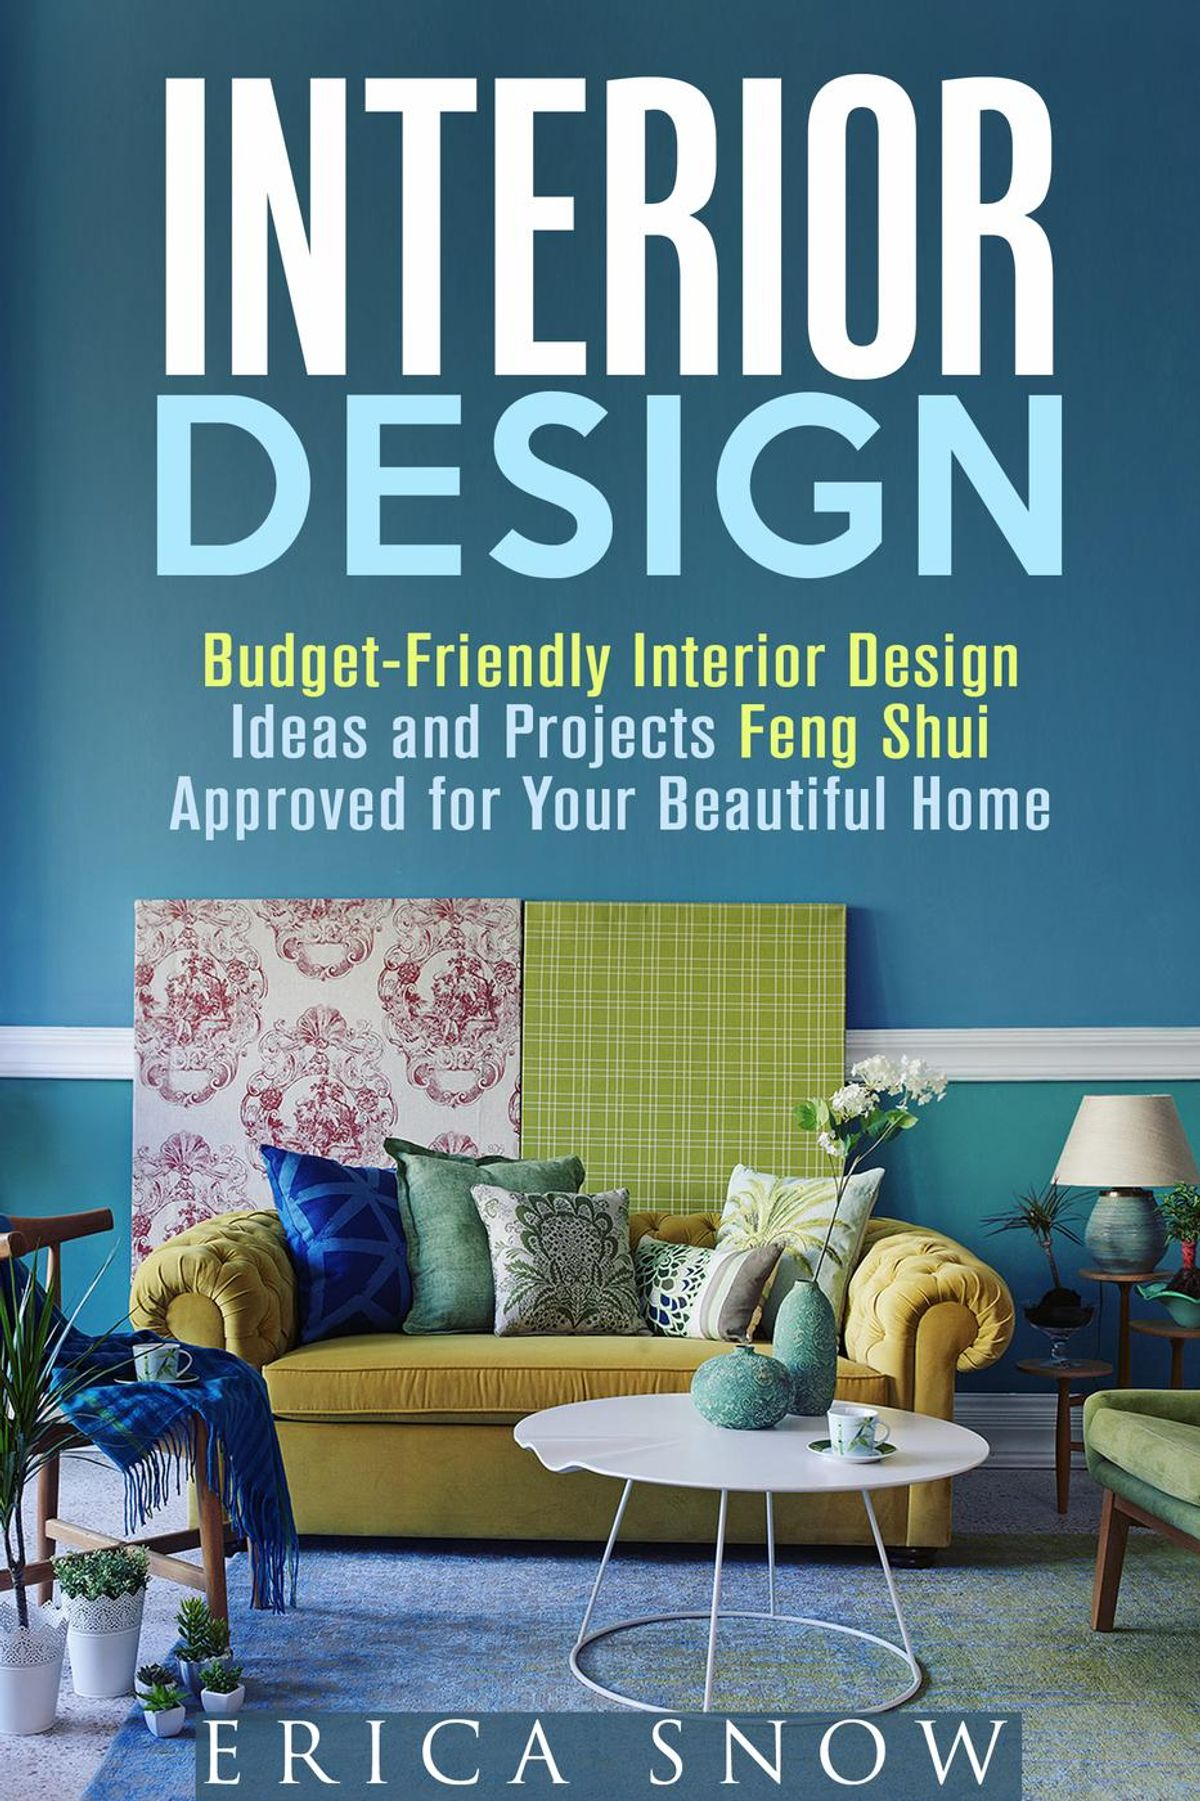 Interior design budget friendly interior design ideas and projects feng shui approved for your beautiful home ebook walmart com